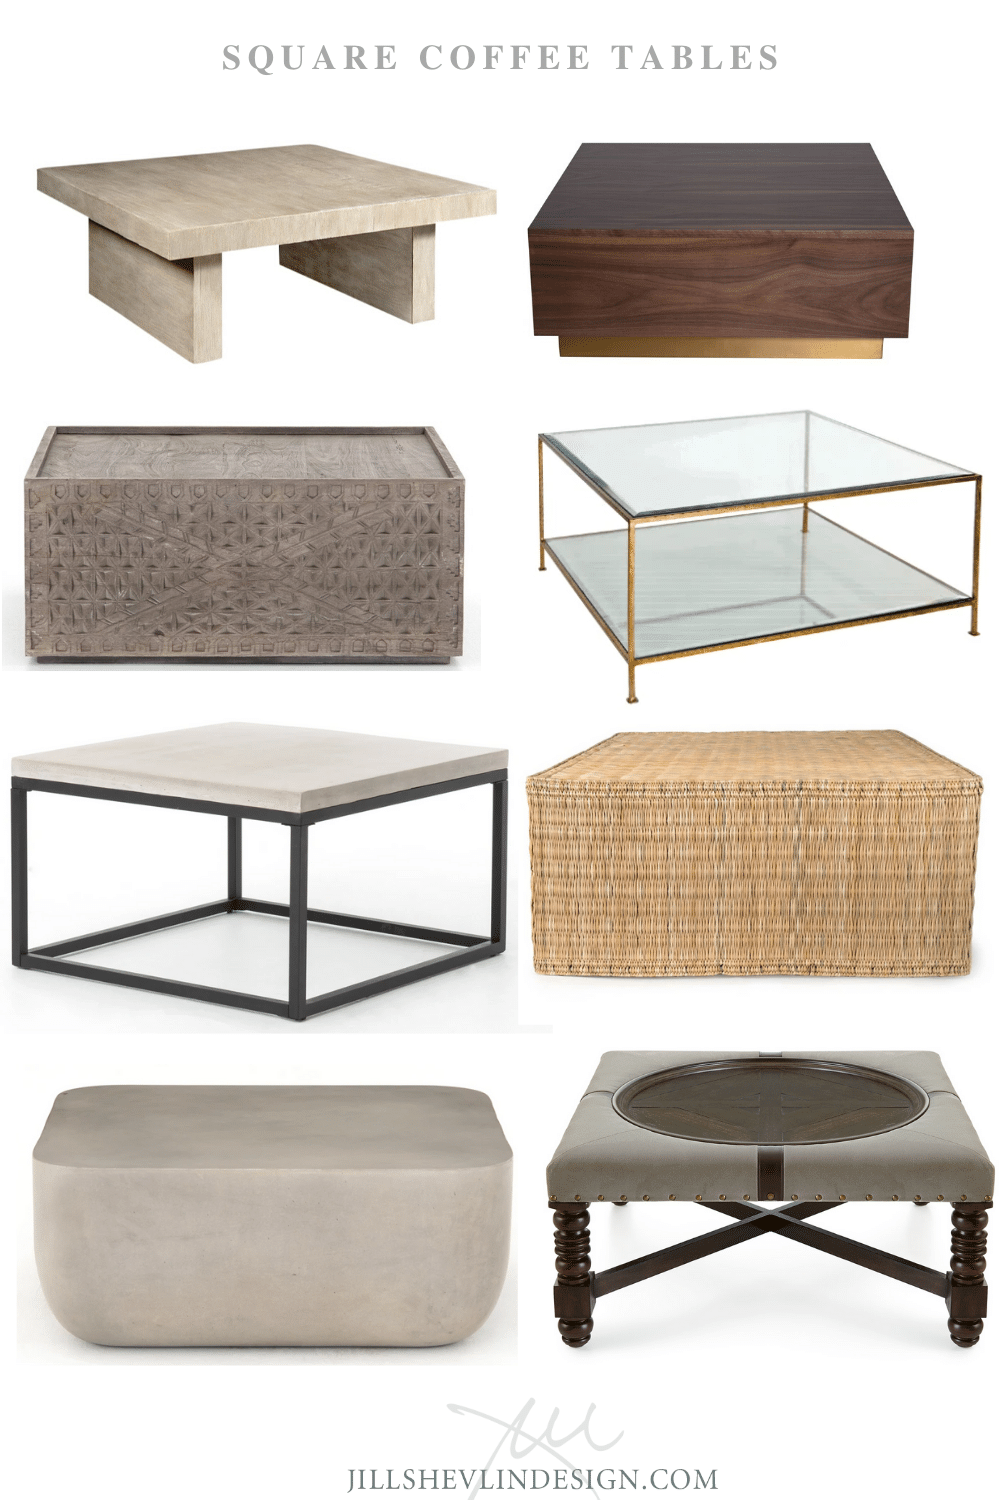 Vero Beach Shop Square Coffee Tables Jill Shelvin Design Vero Beach Interior Designer Vero Beach Home Decor Furniture